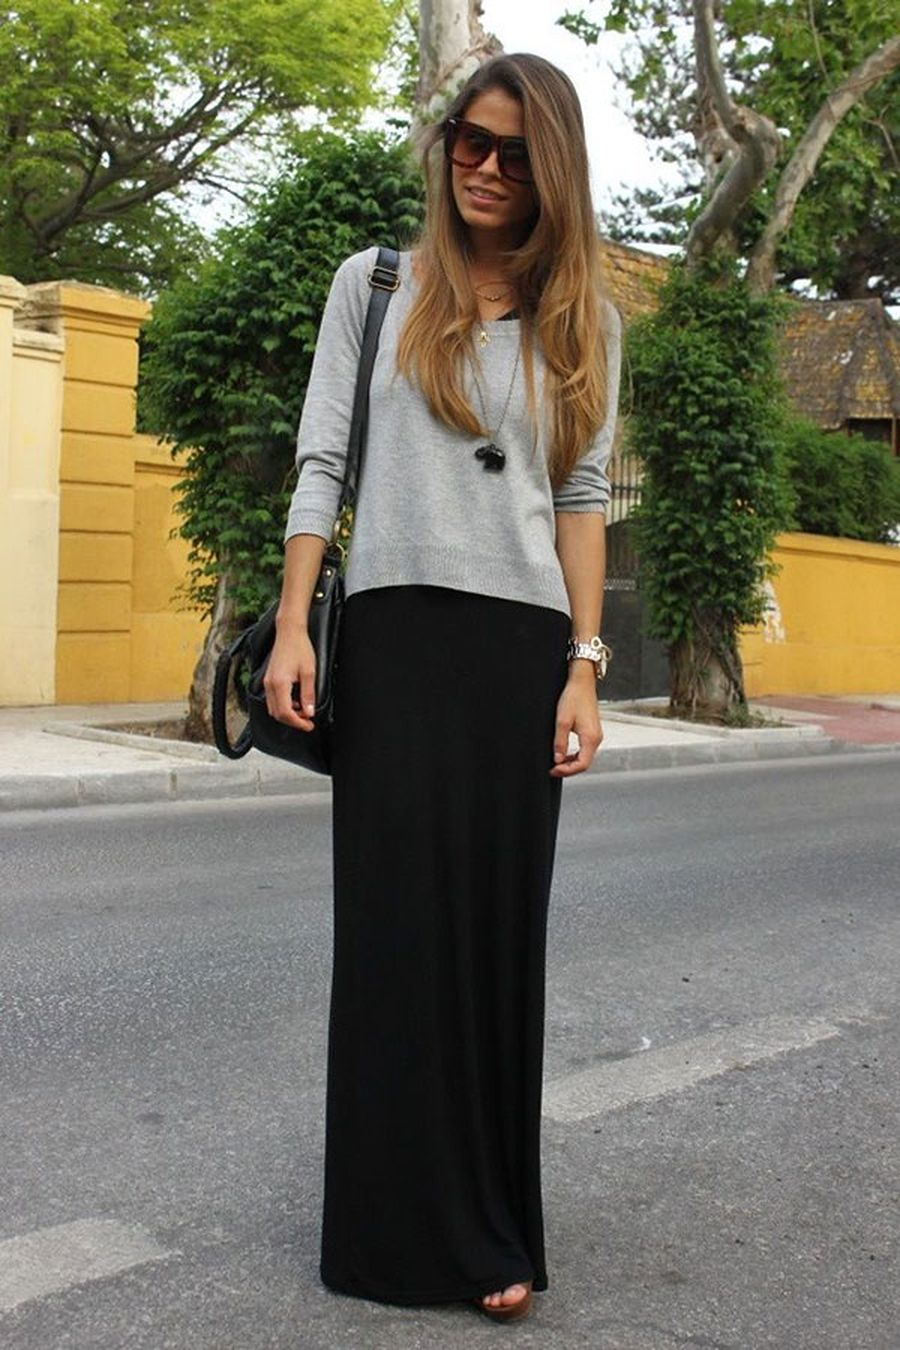 Skirt trends ideas for winter outfits this year 14